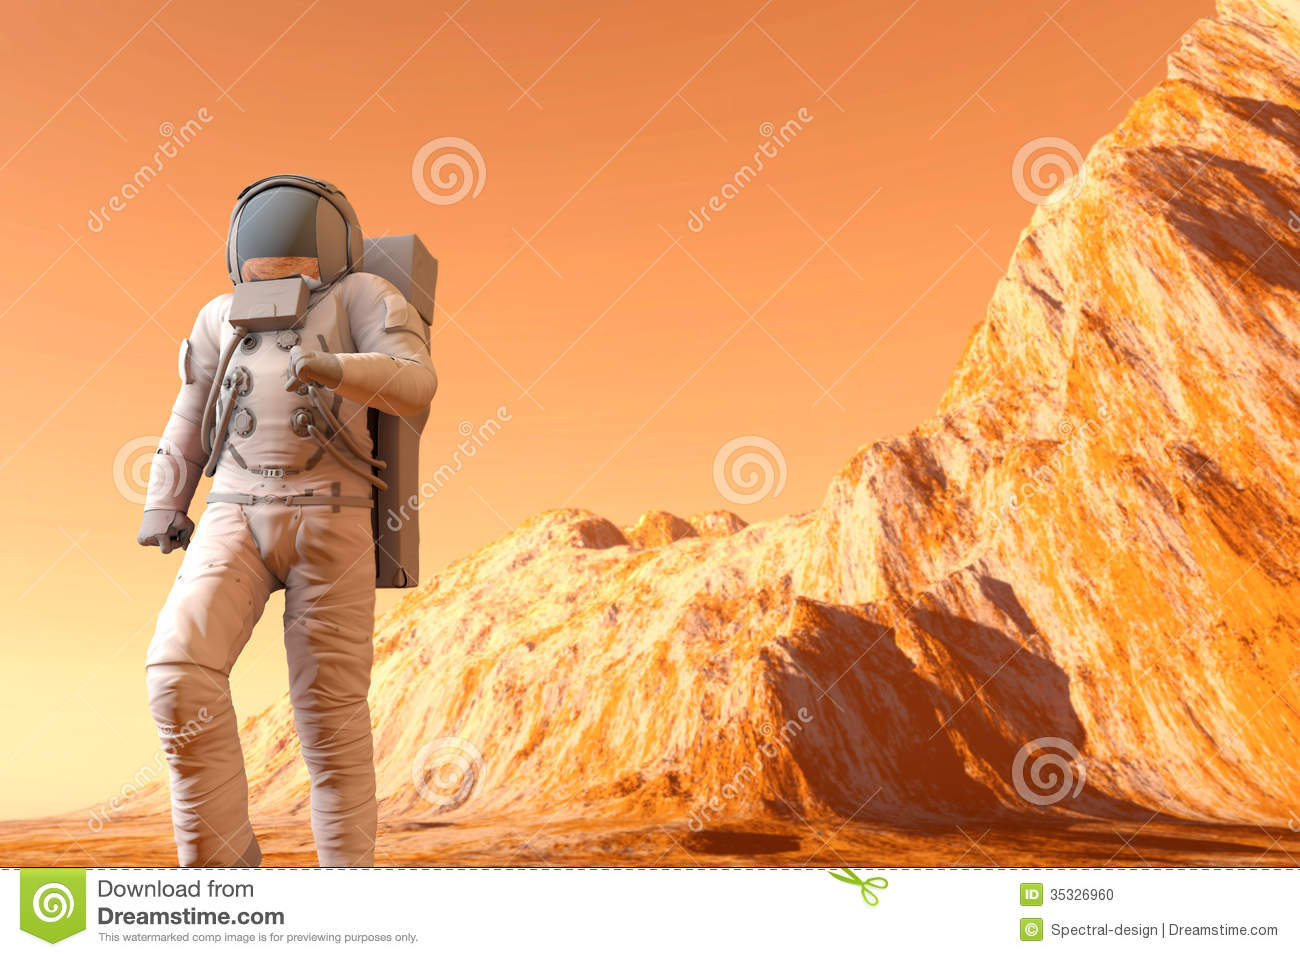 Astronaut On Mars Stock Photo - Image: 35326960